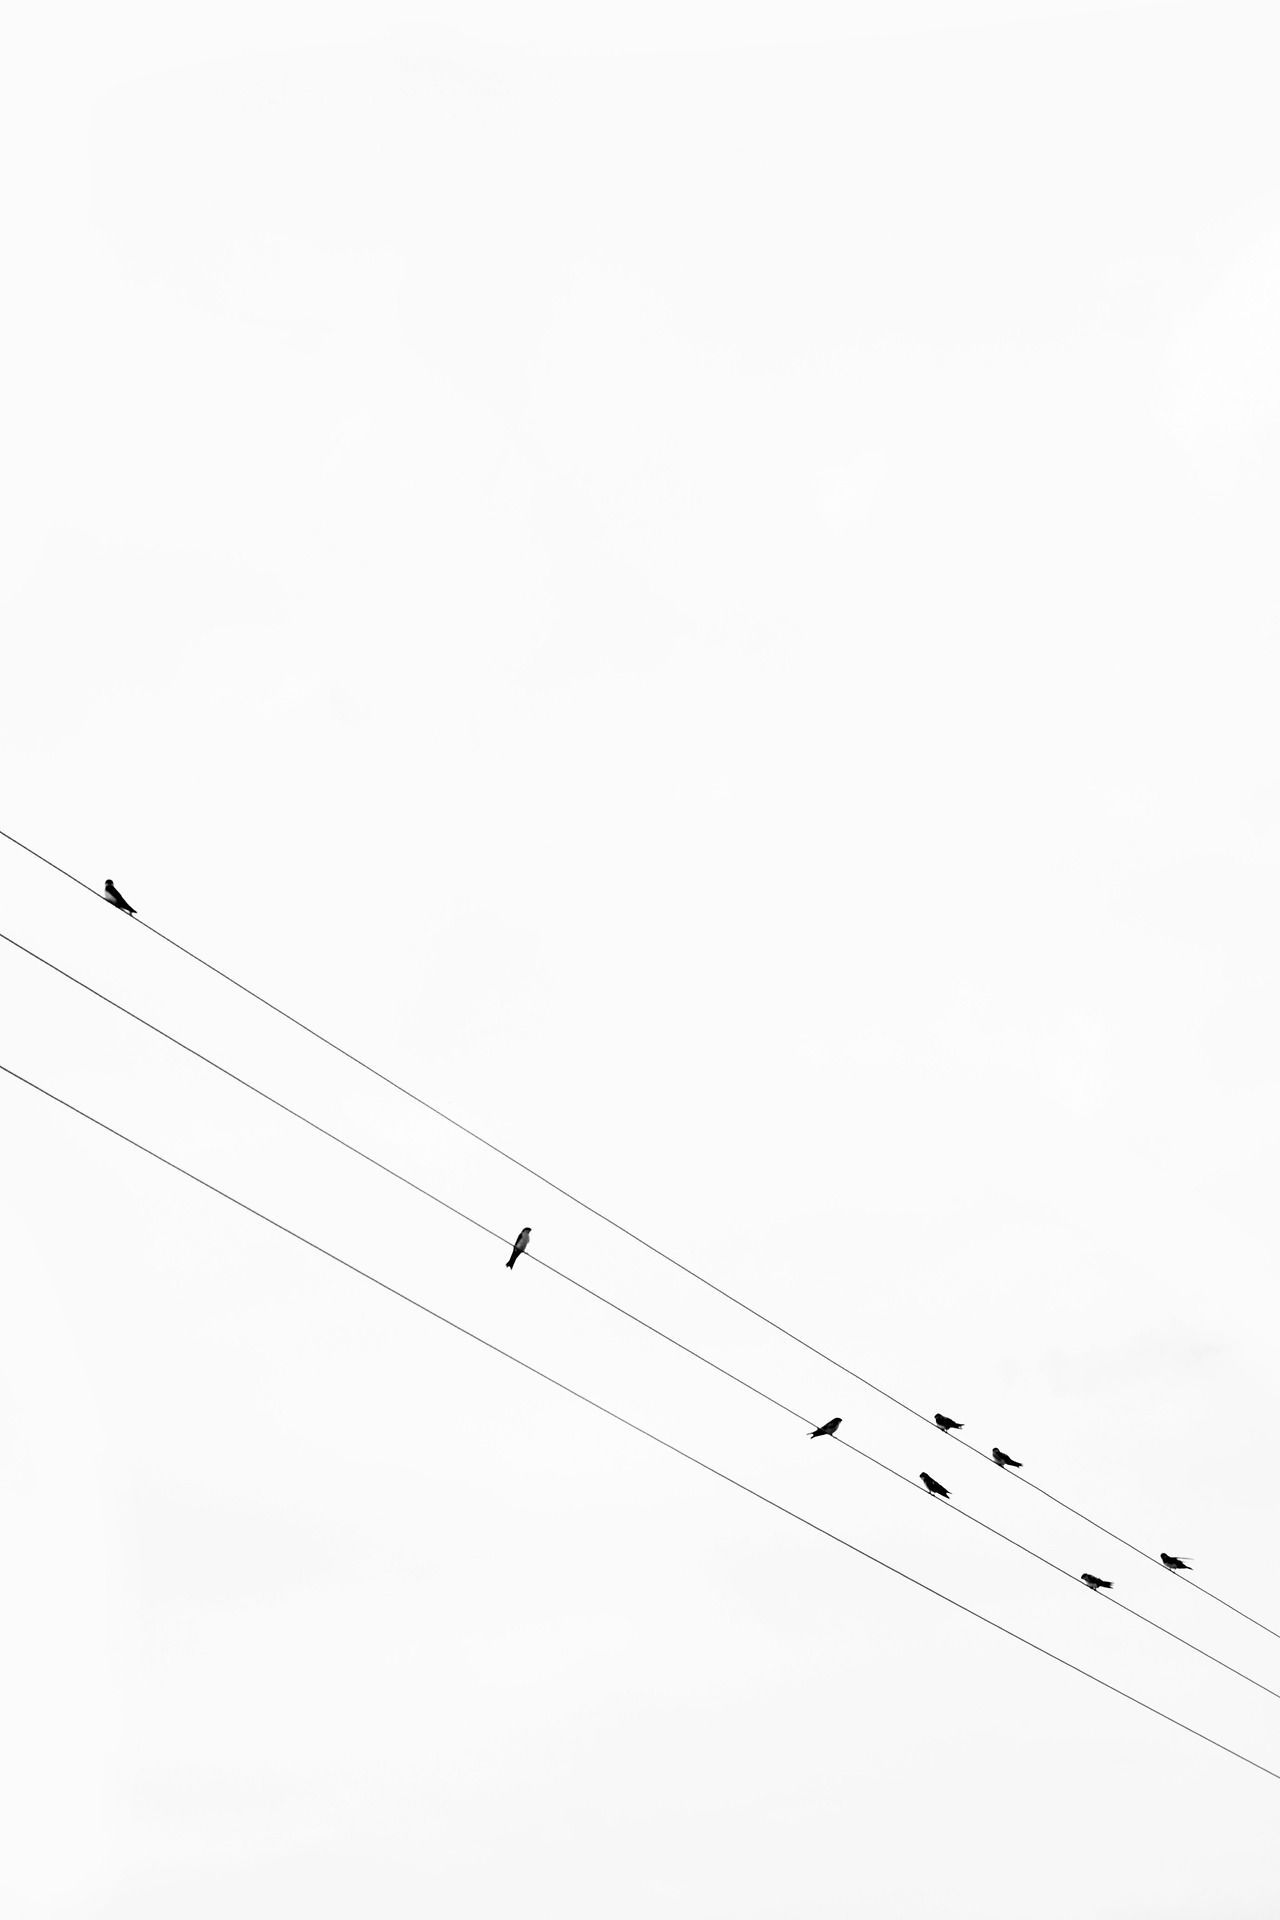 On A Wire White Aesthetic Minimalist Wallpaper Minimalist Photography